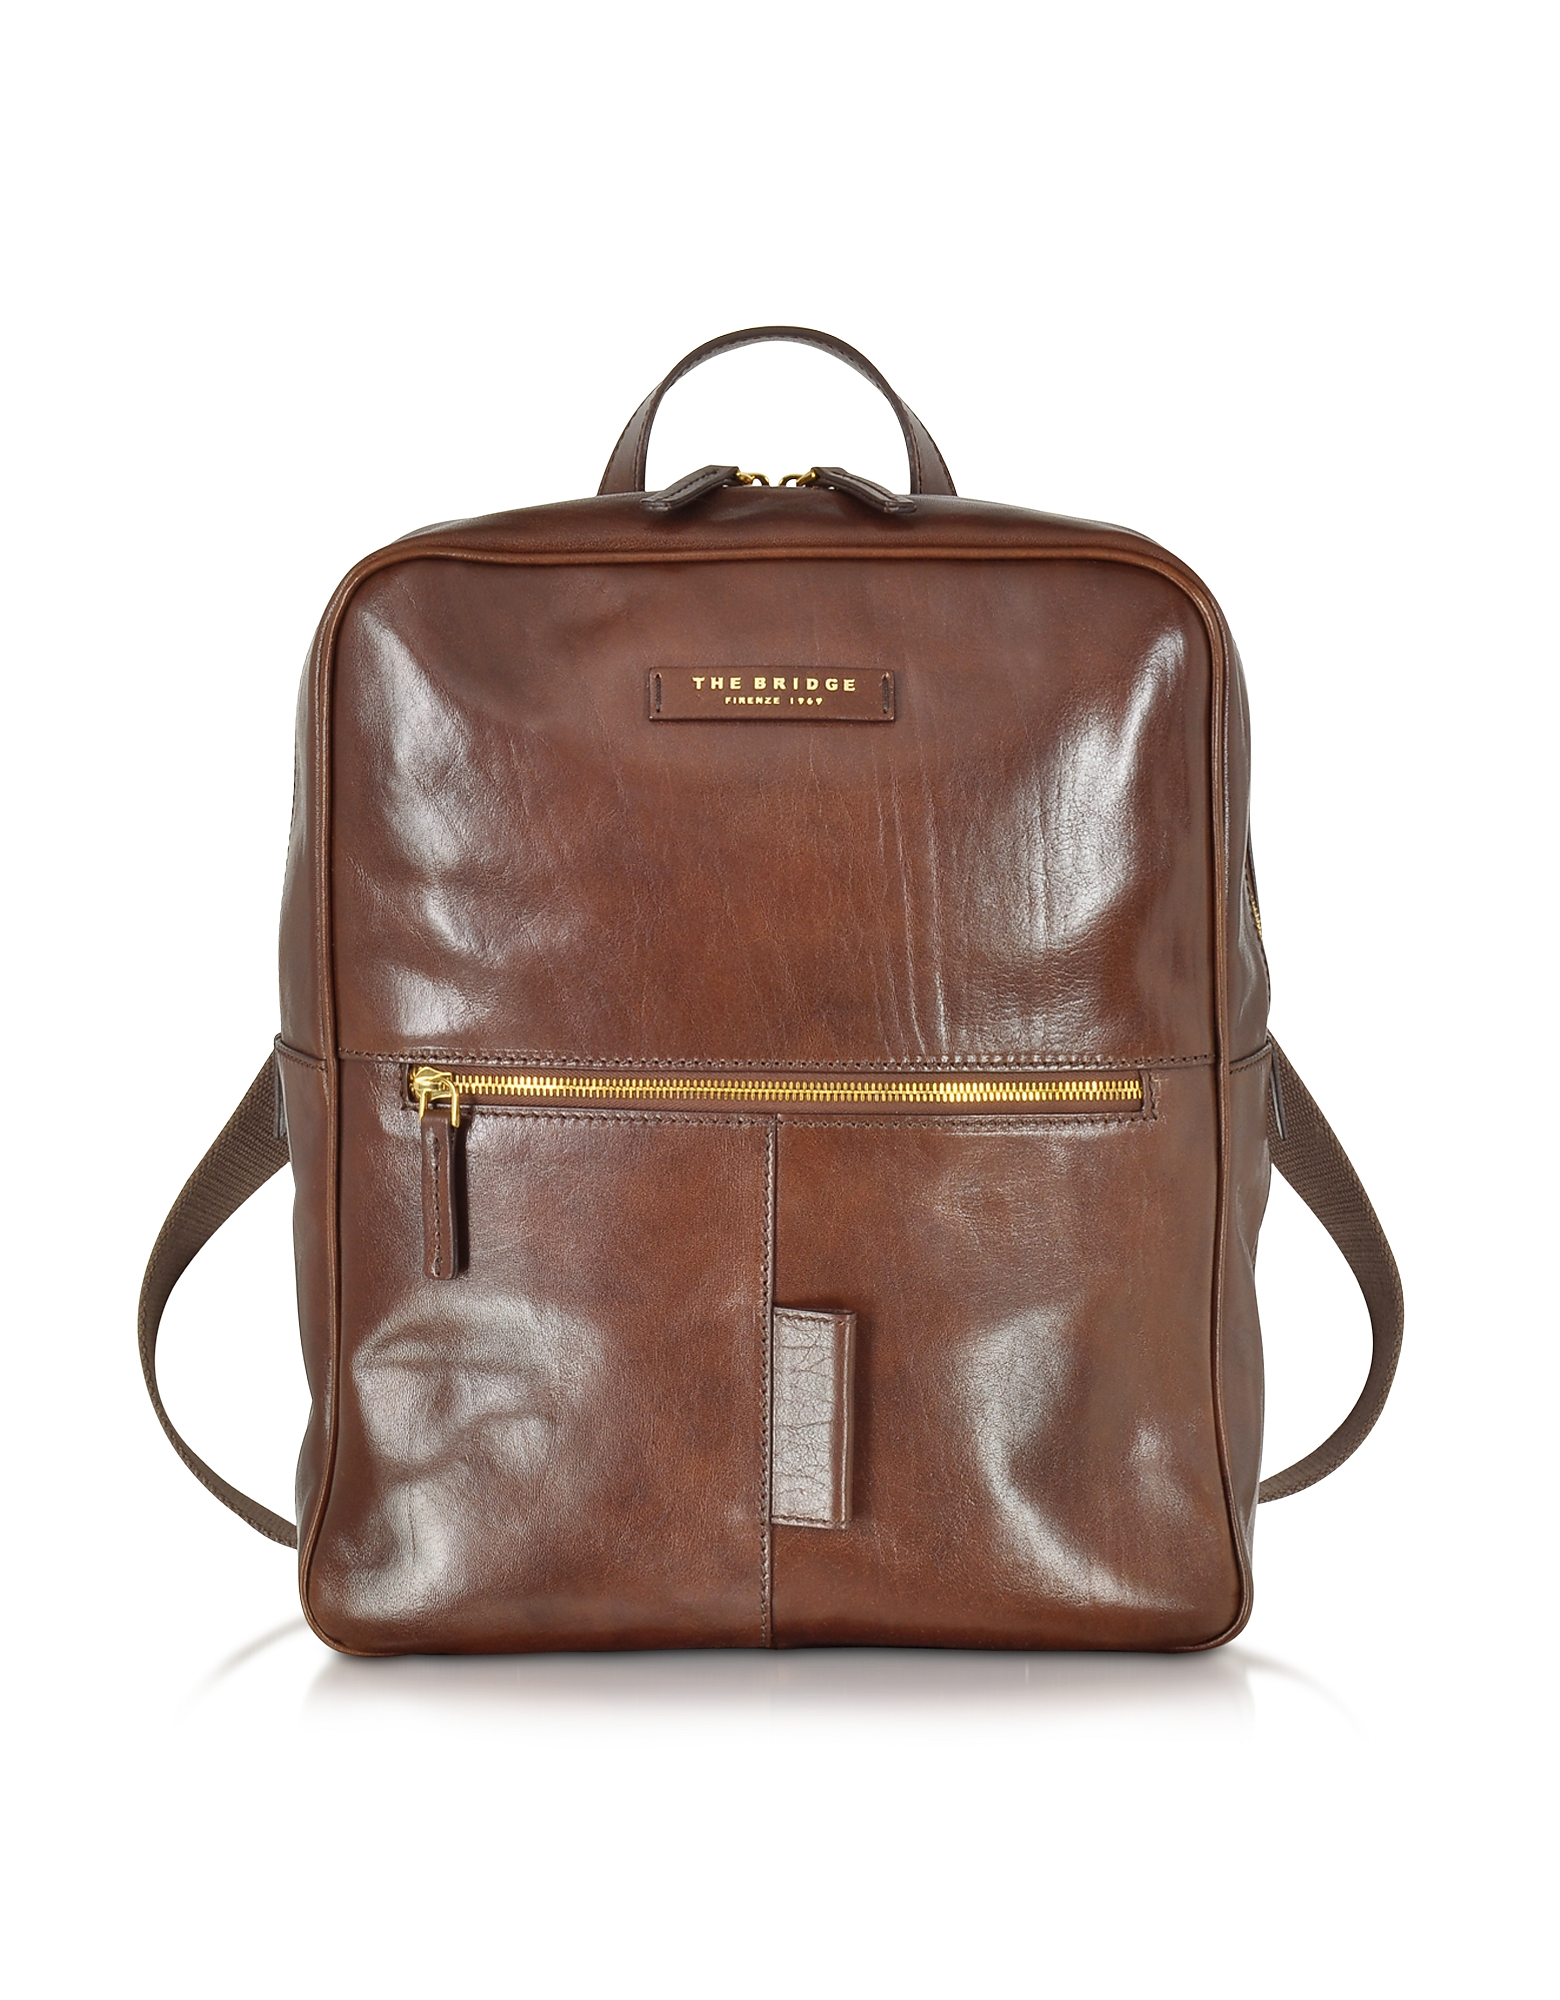 Image of The Bridge Designer Backpacks, Passpartout Marrone Leather Backpack